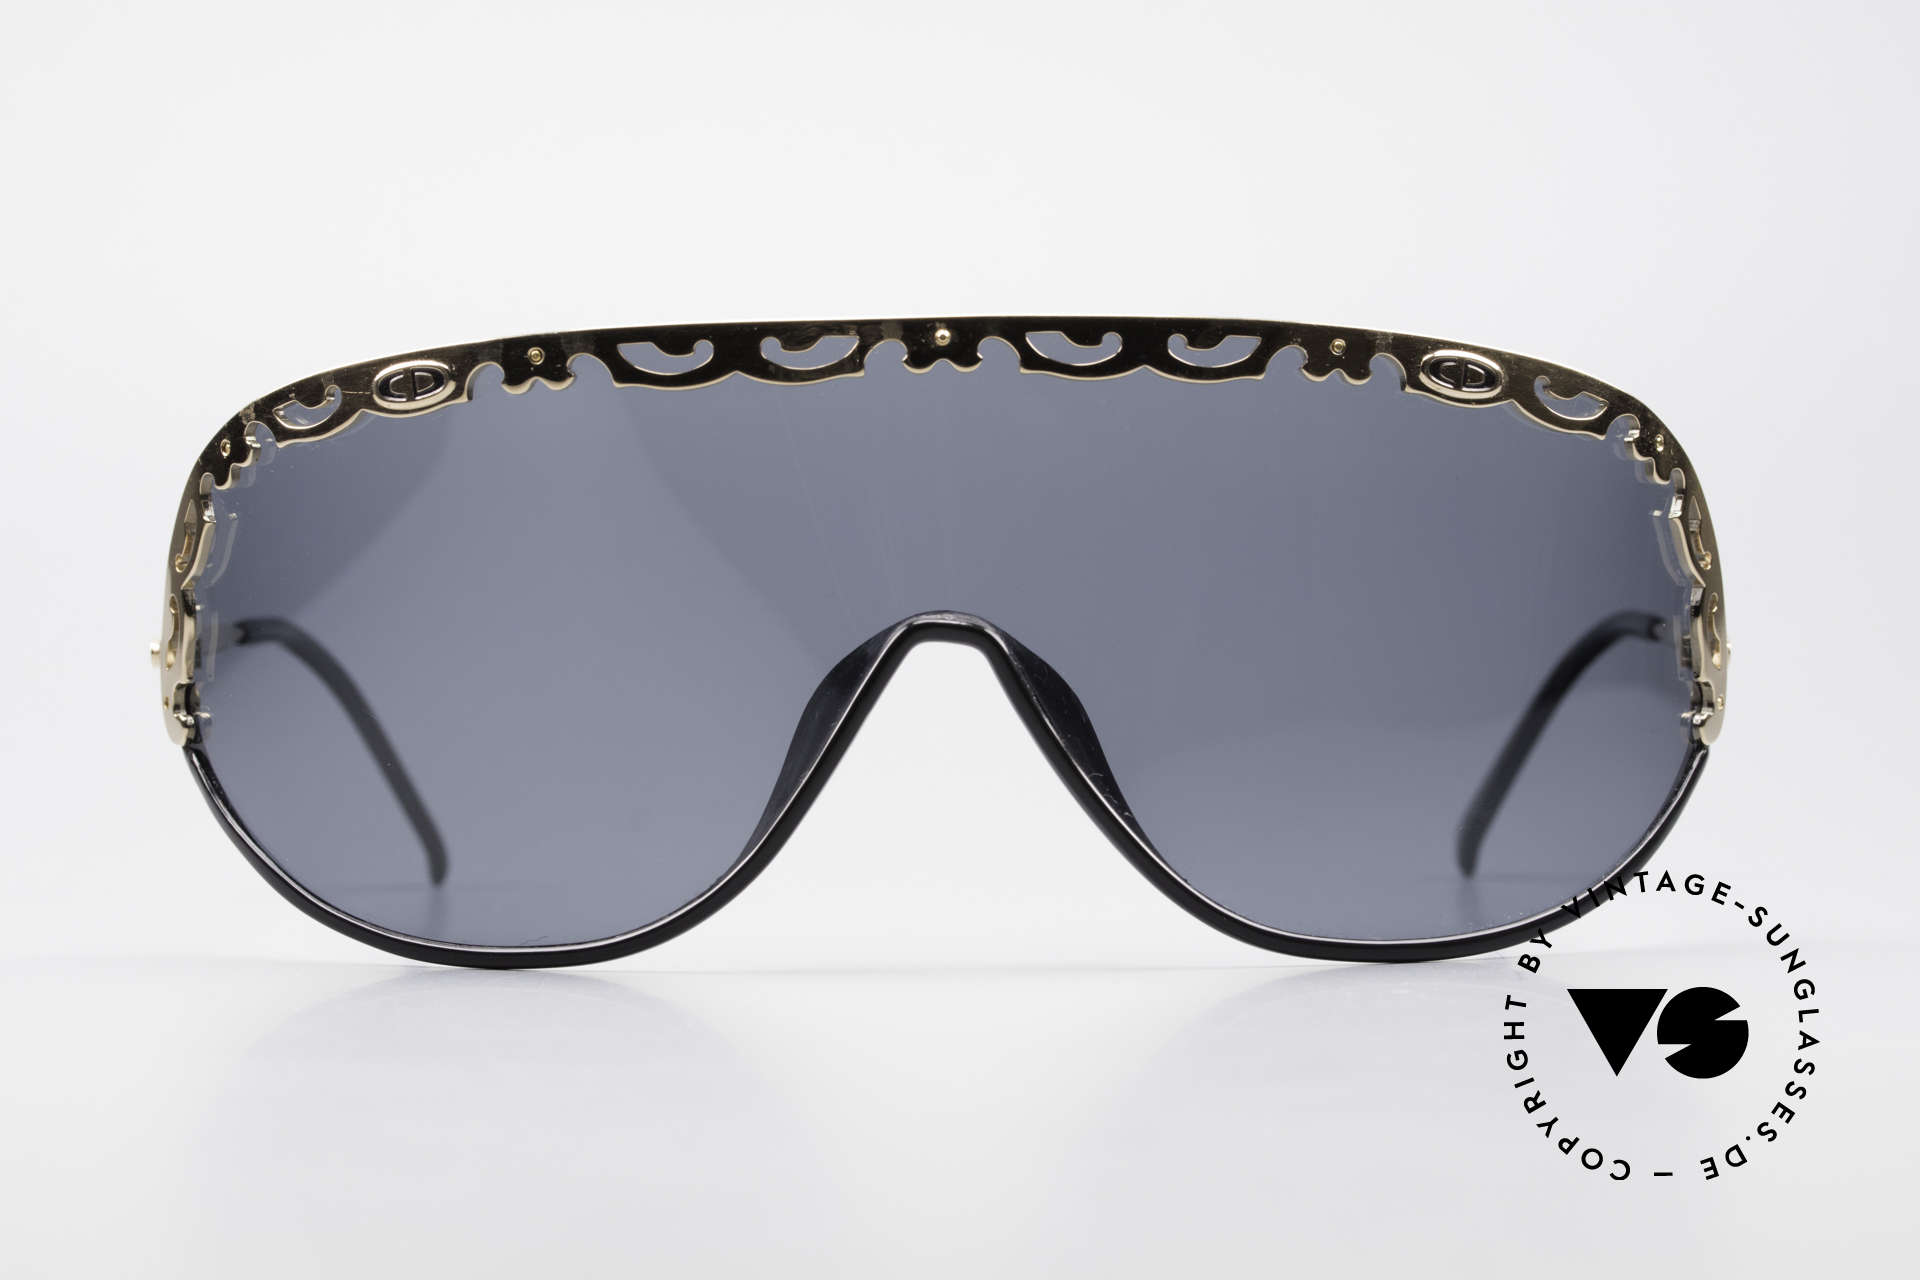 Christian Dior 2501 Rare 80's Sunglasses Polarized, one large, single shade in X-Large size (panorama view), Made for Women